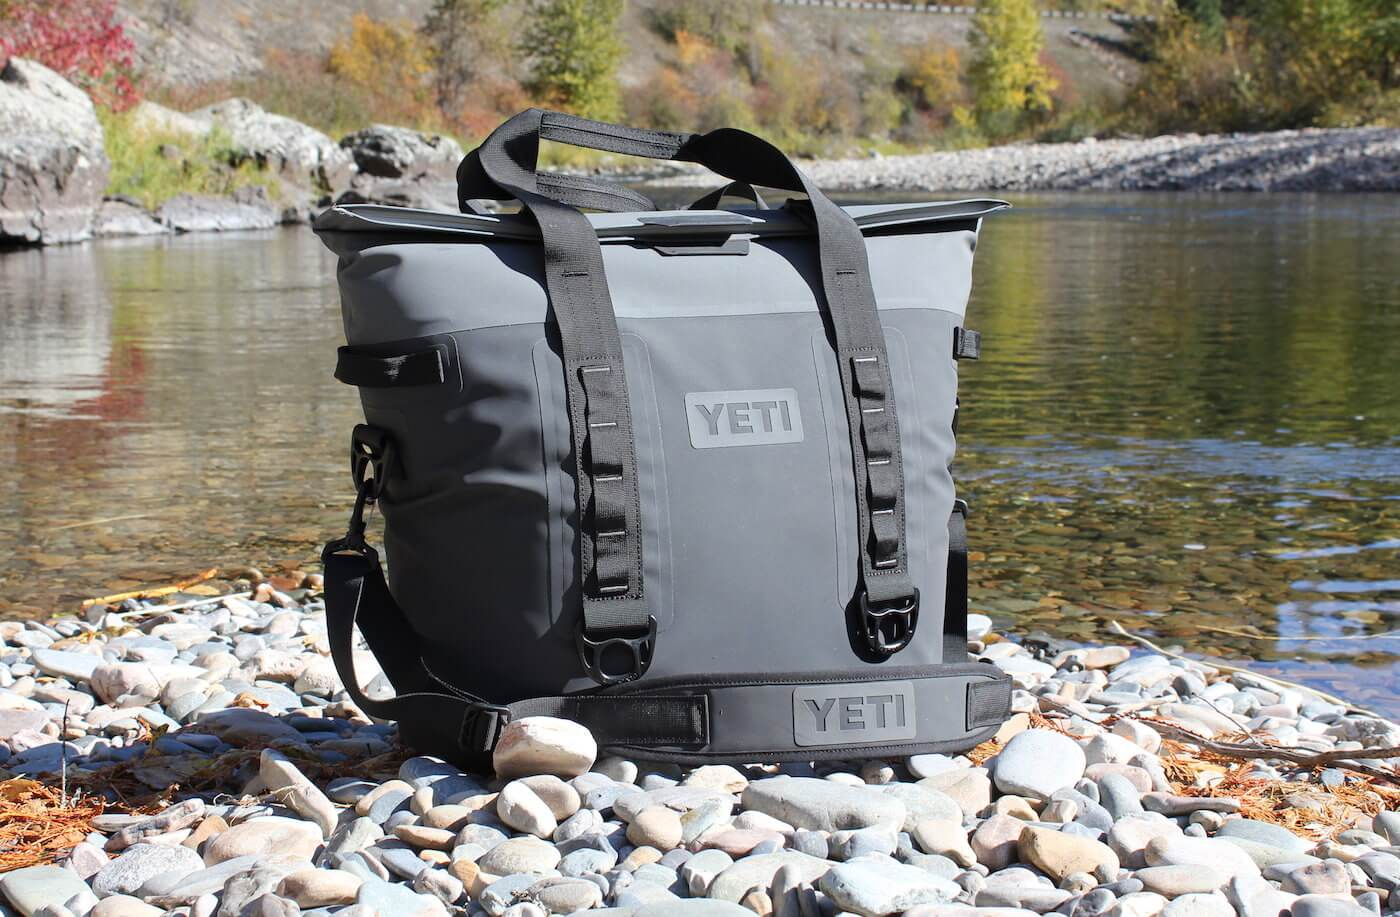 This photo shows the YETI Hopper M30 soft cooler next to a river.